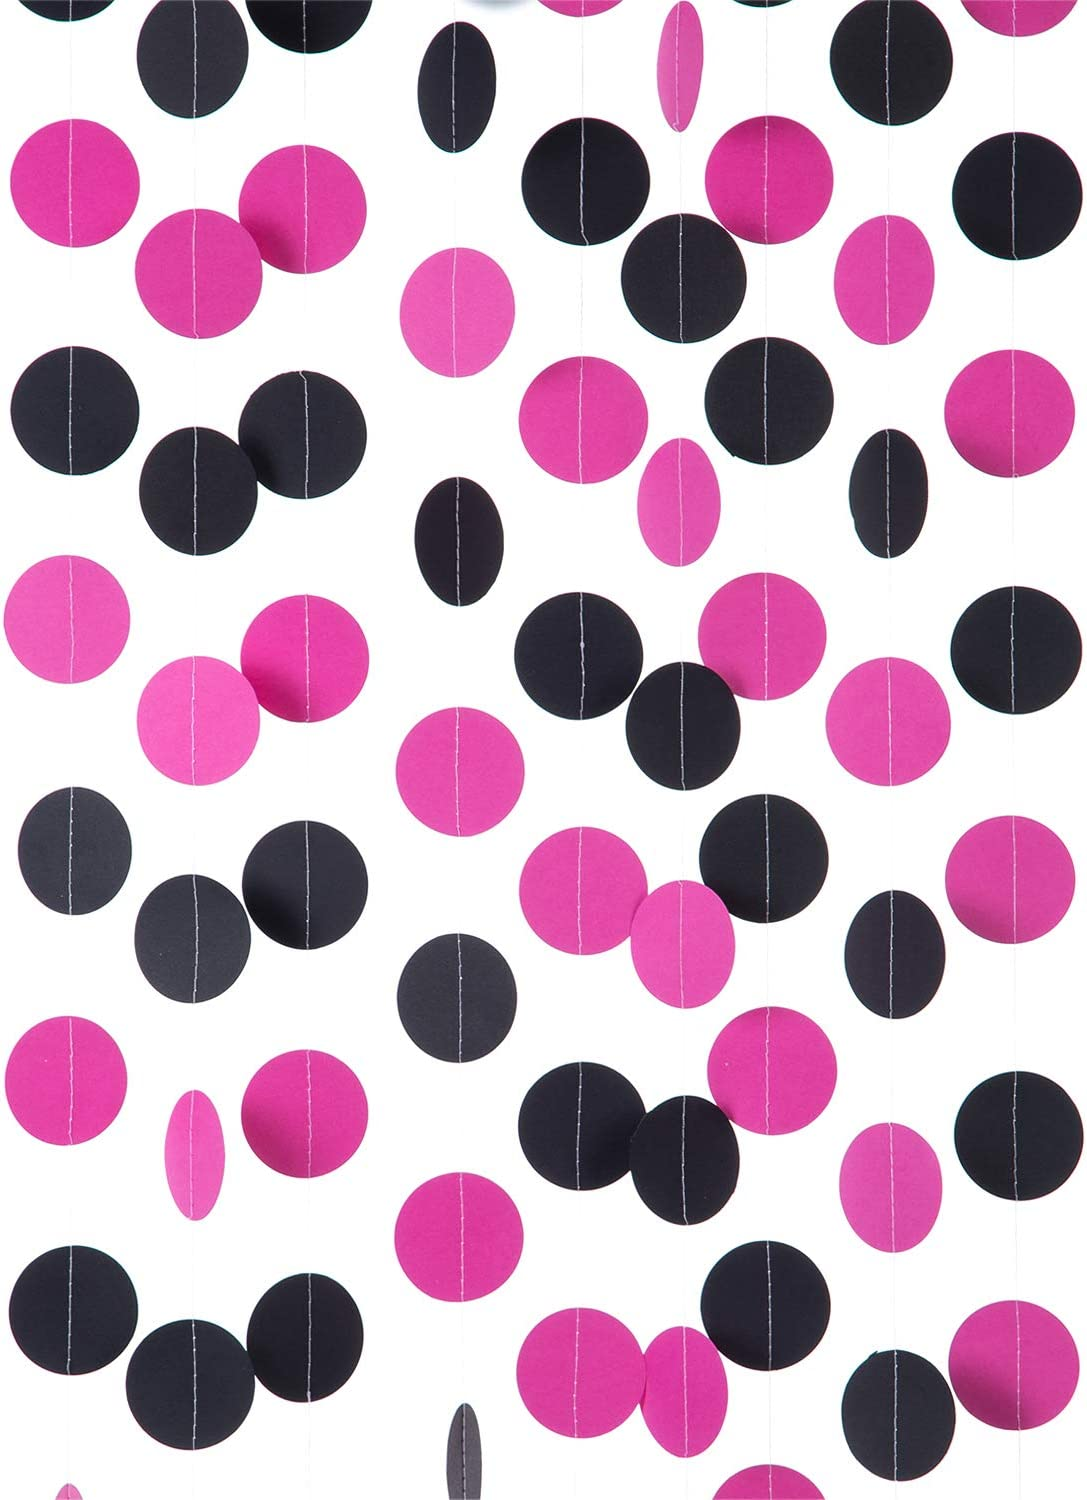 """WEVEN Hot Pink and Black Paper Garland Circle Dot Party Banner Streamer Backdrop Hanging Decorations, 2"""" in Diameter, 3 pcs, 30 Feet in Total"""